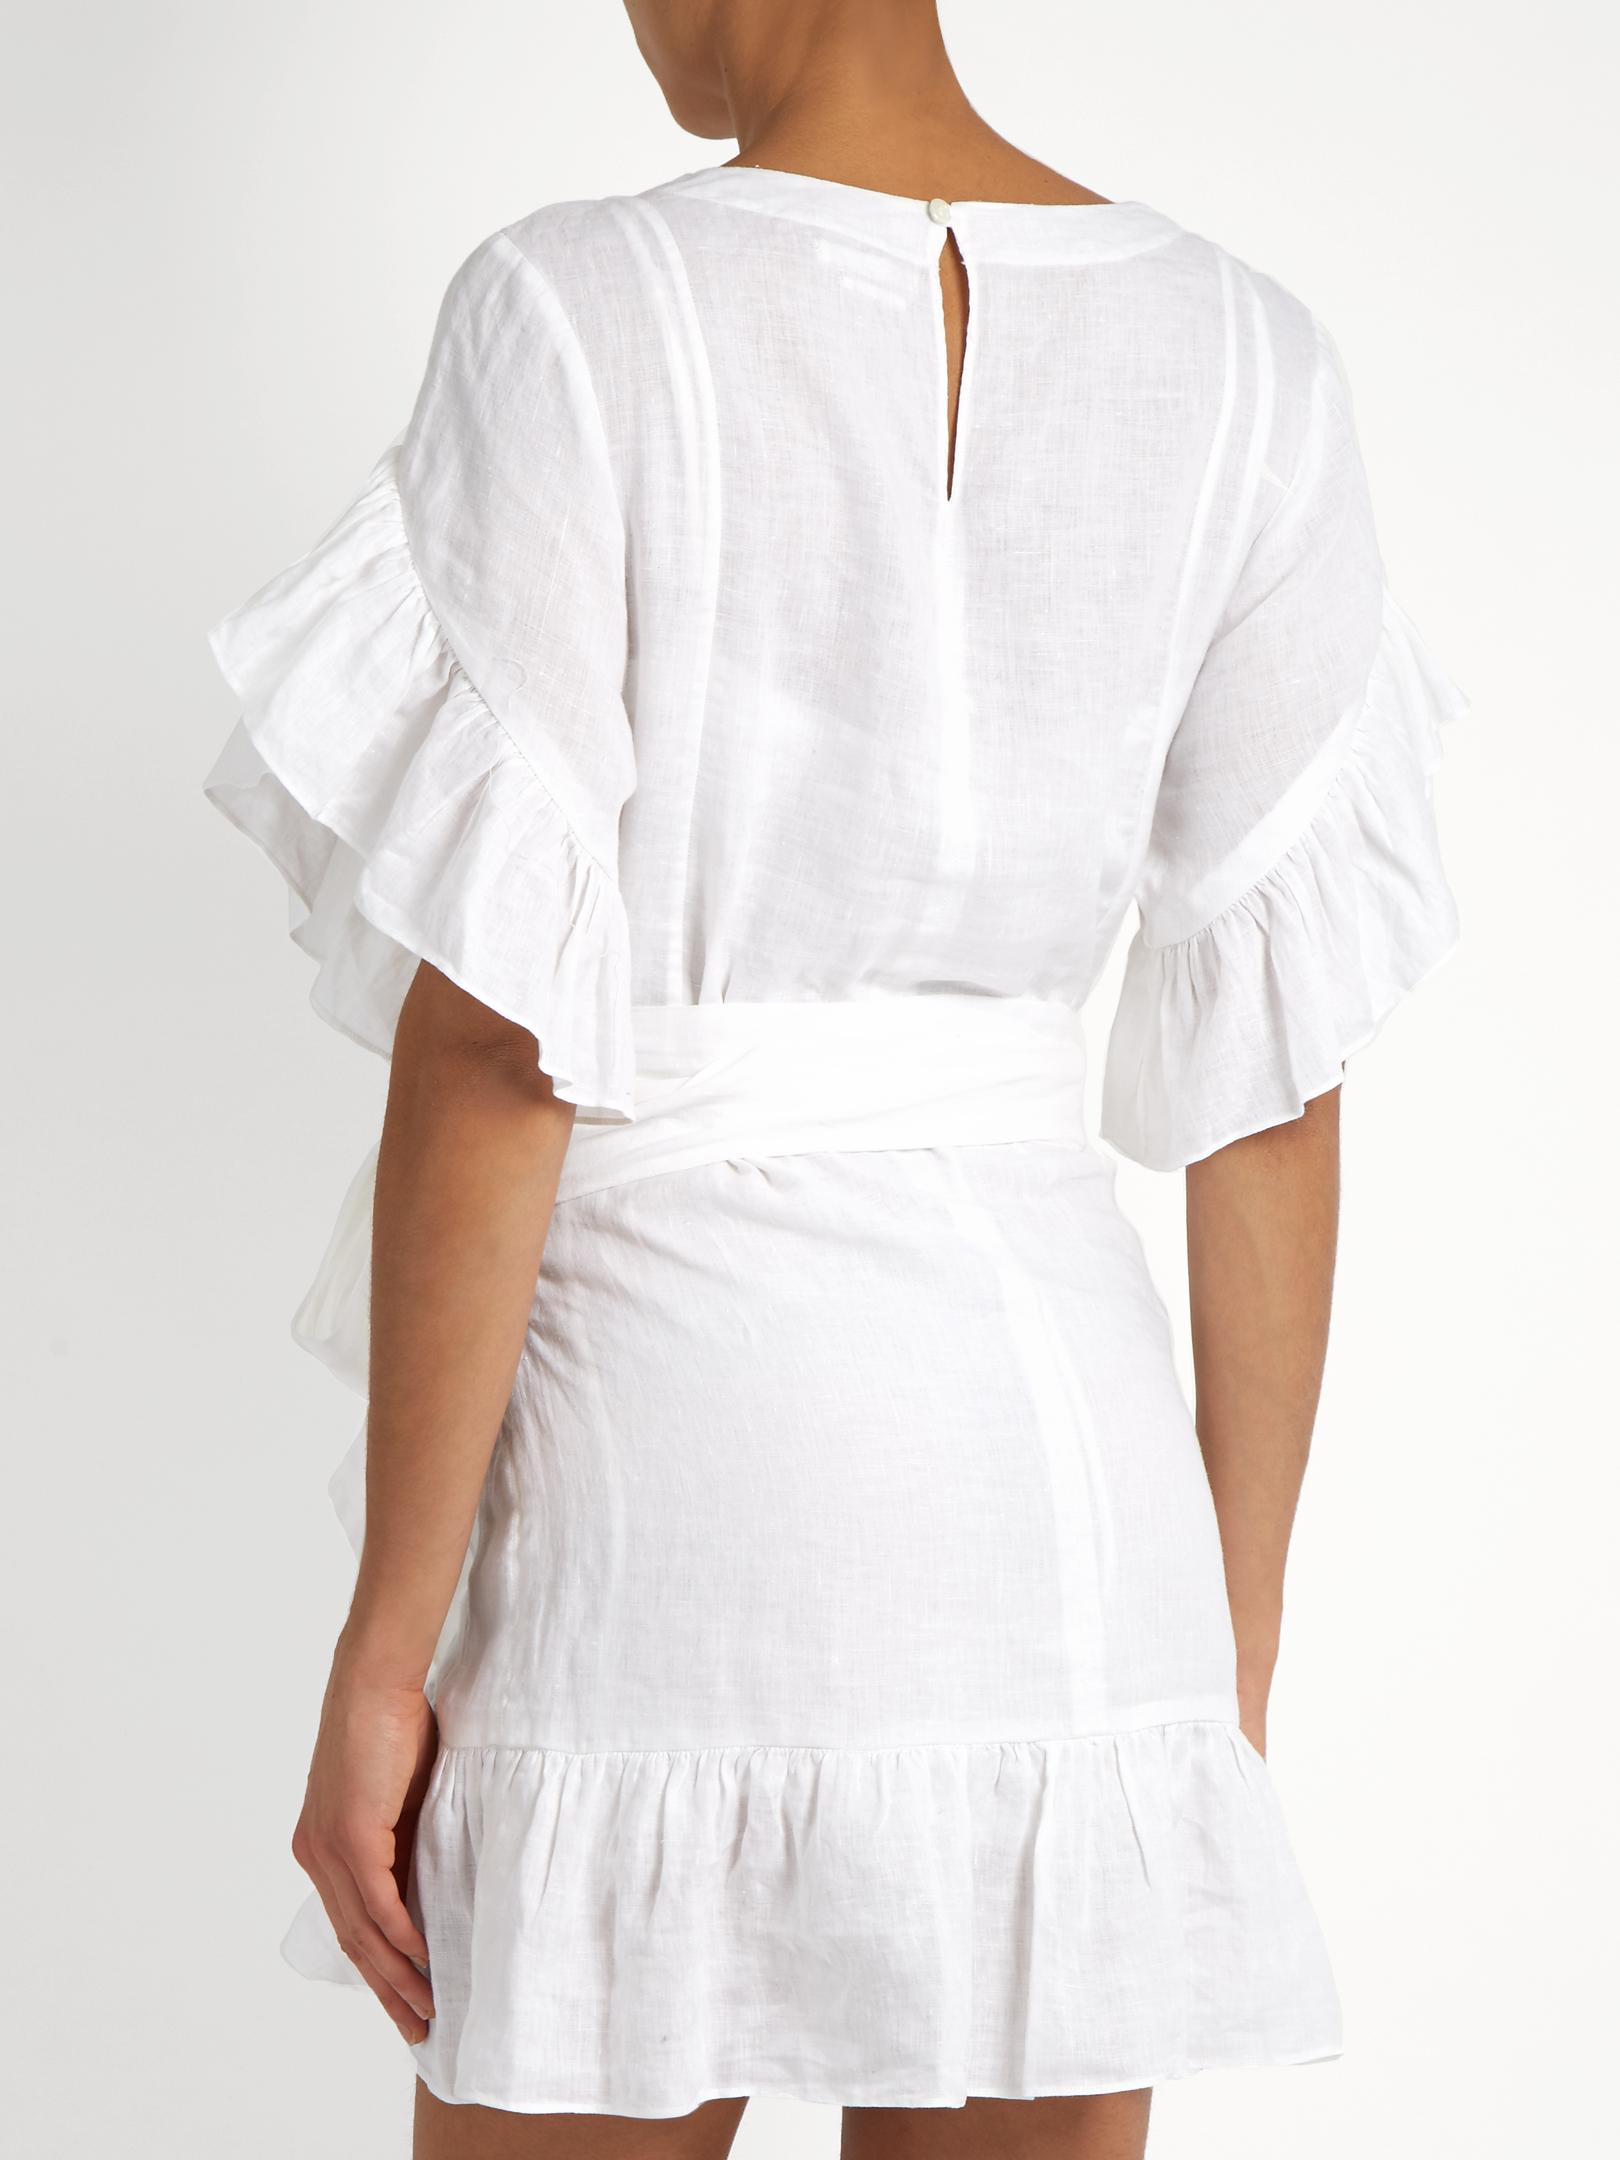 abdf0fd6ccd Lyst - Étoile Isabel Marant Delicia Ruffled Linen Mini Dress in White